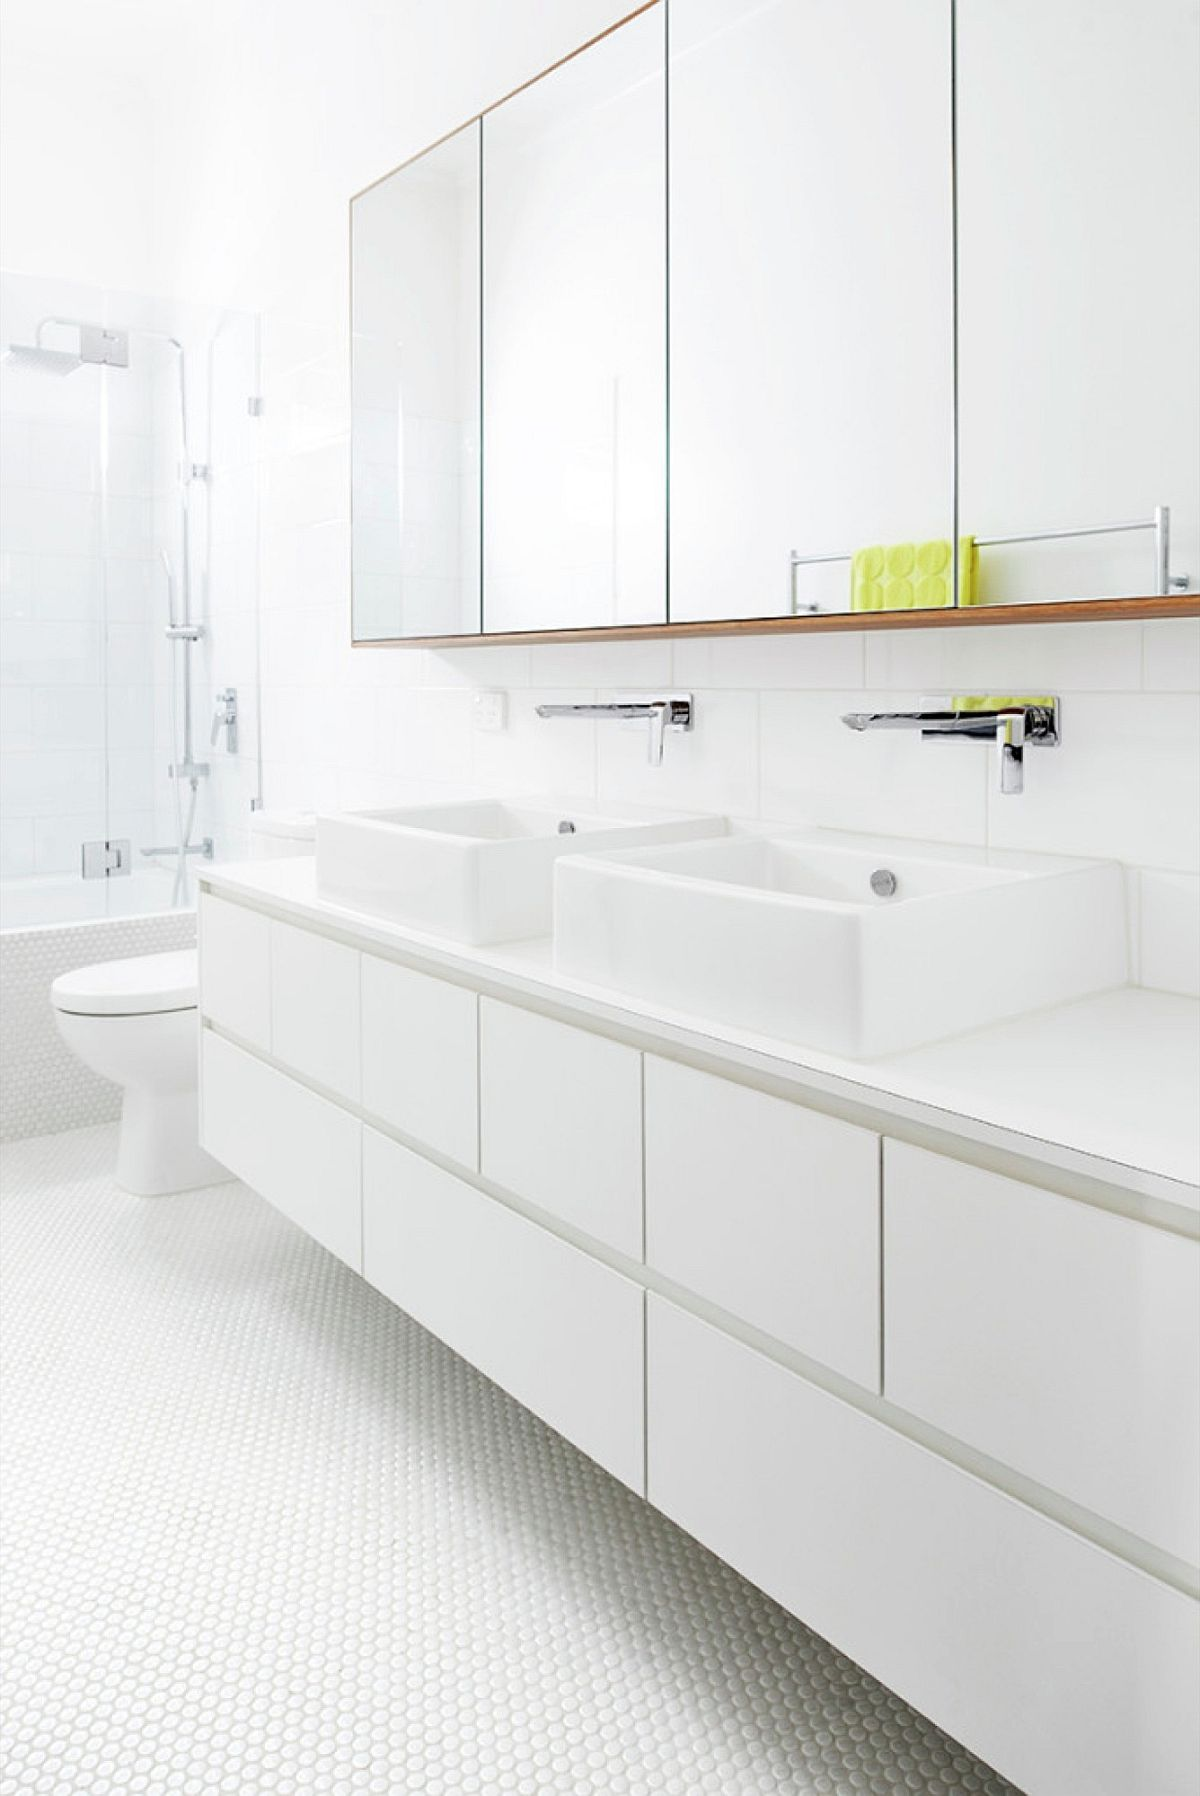 Contemporary all-white bathroom with penny tile flooring